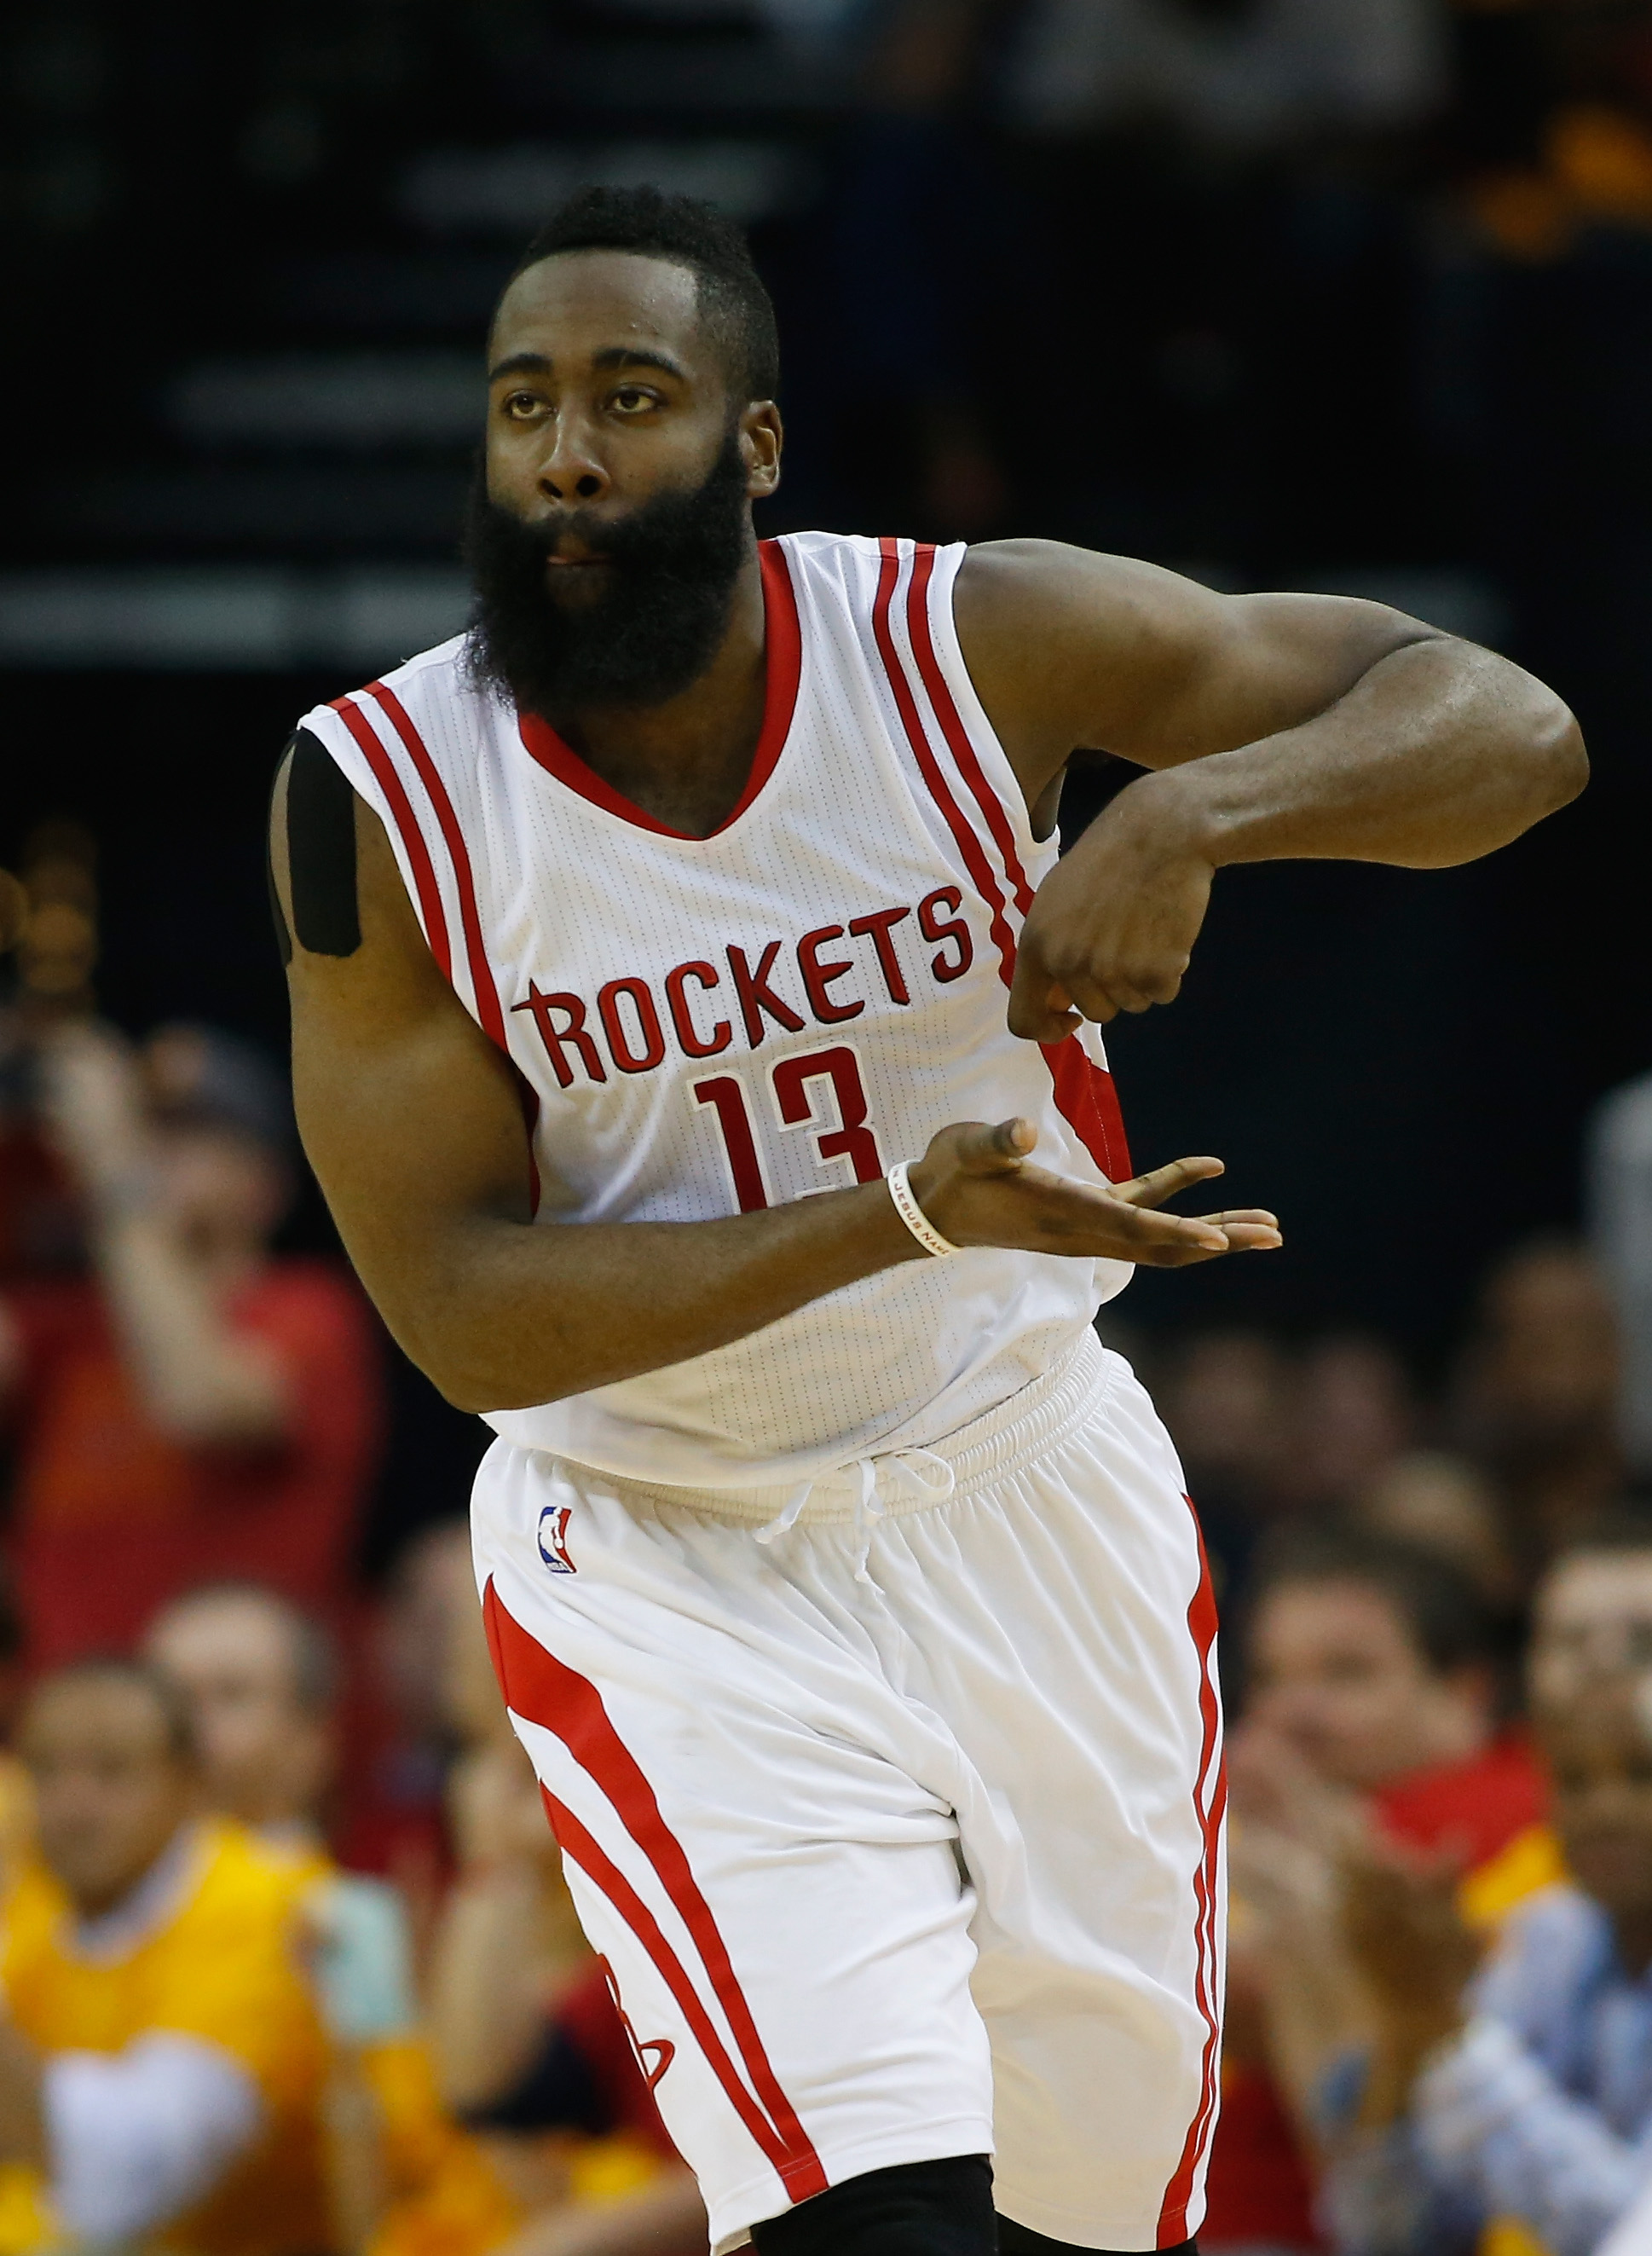 HOUSTON, TX - MAY 12:  James Harden #13 of the Houston Rockets reacts after scoring against the Los Angeles Clippers during Game Five of the Western Conference Semifinals at the Toyota Center for the 2015 NBA Playoffs on May 12, 2015 in Houston, Texas.  (